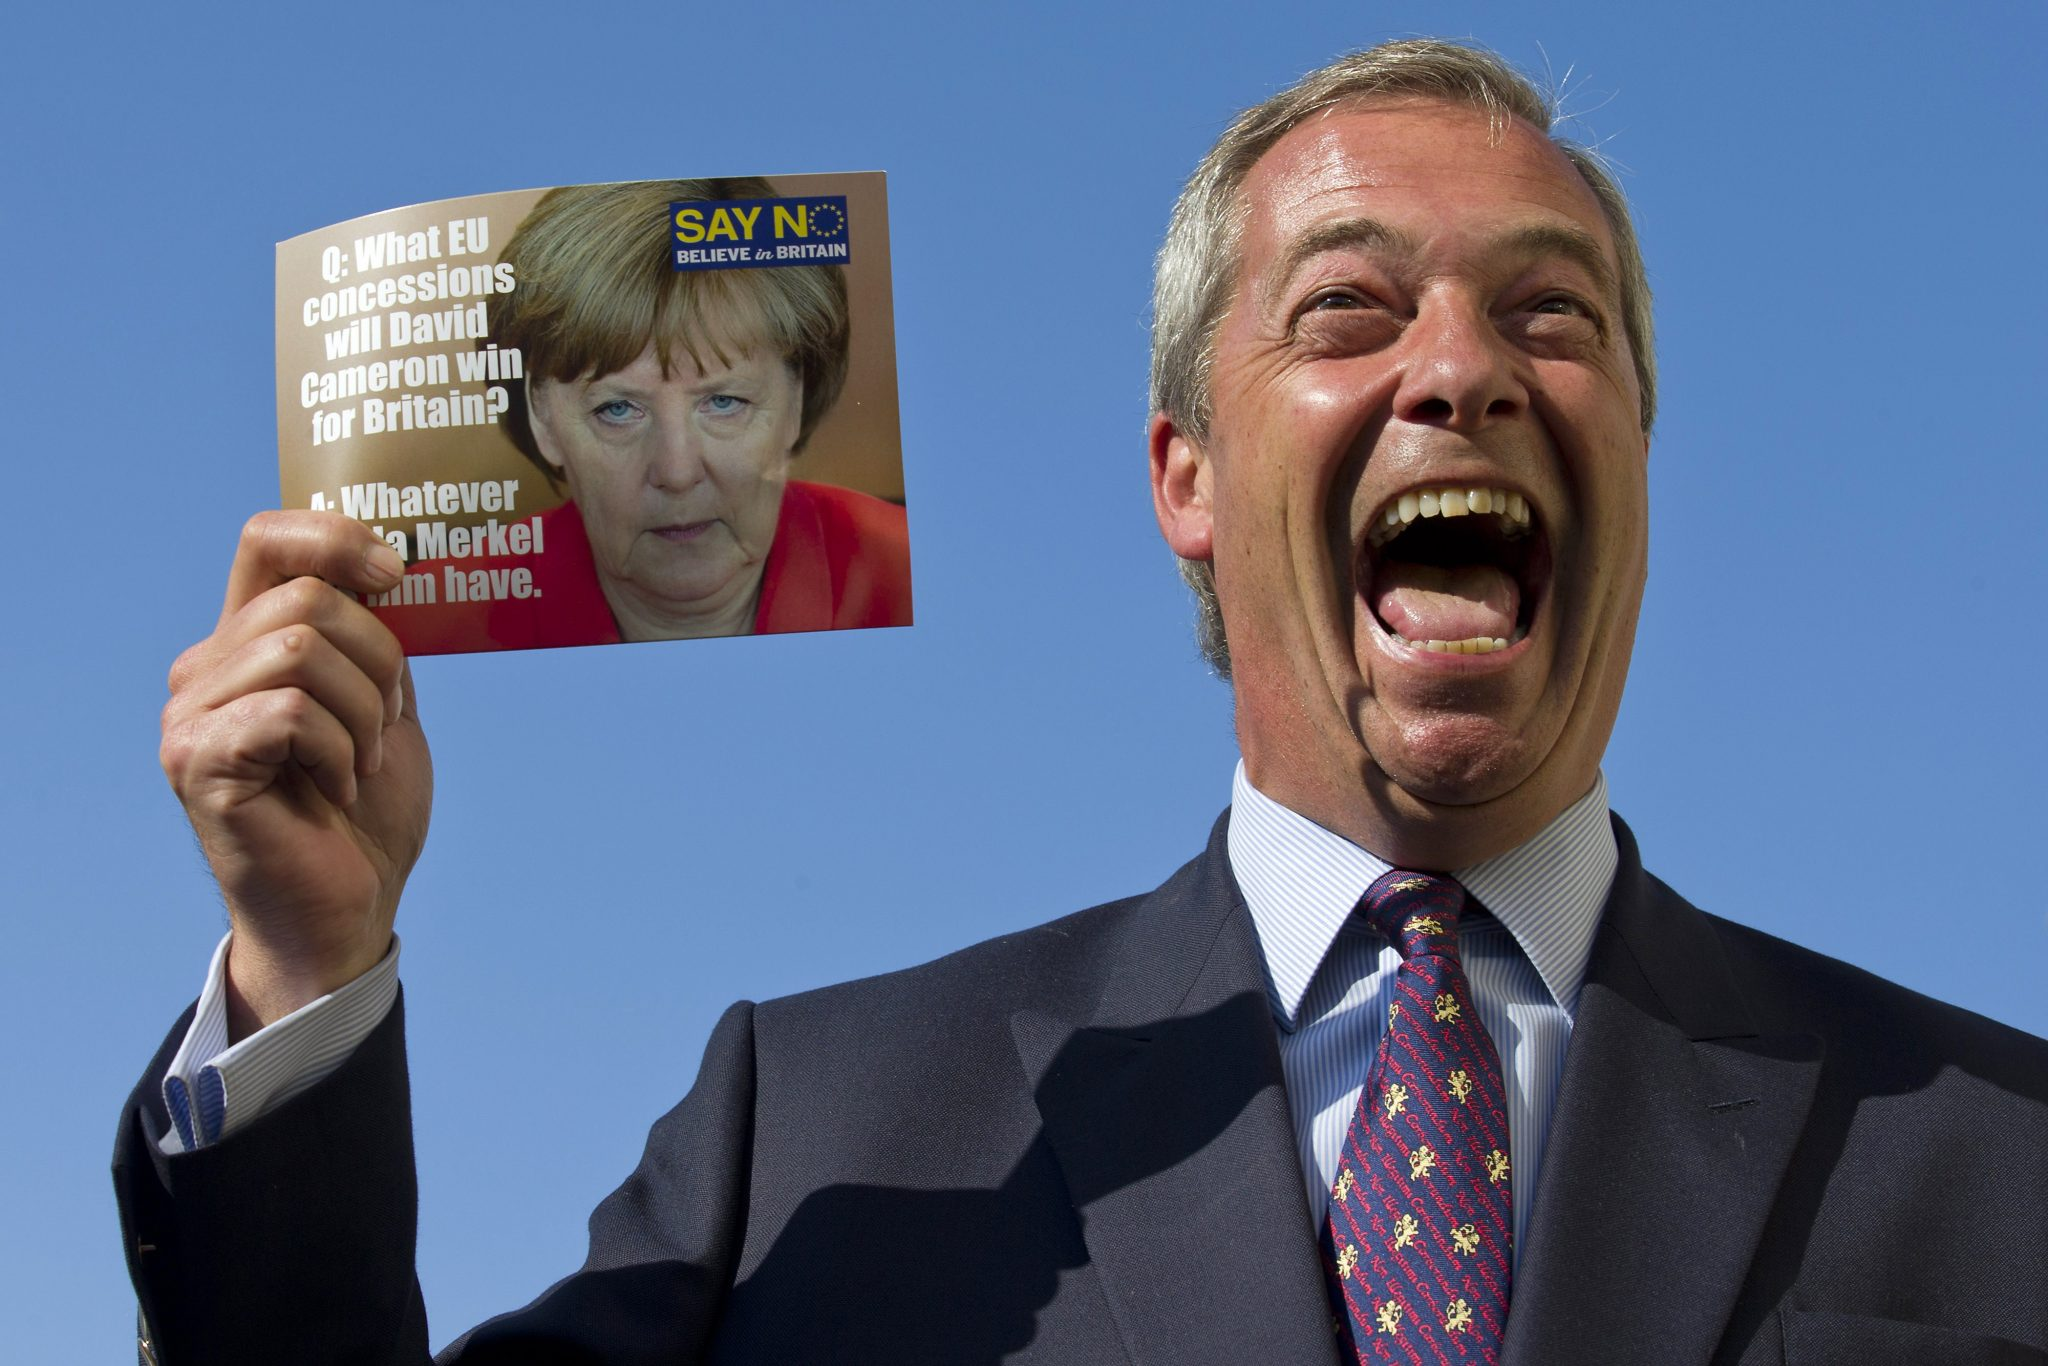 BRITAIN-POLITICS-UKIP-EU